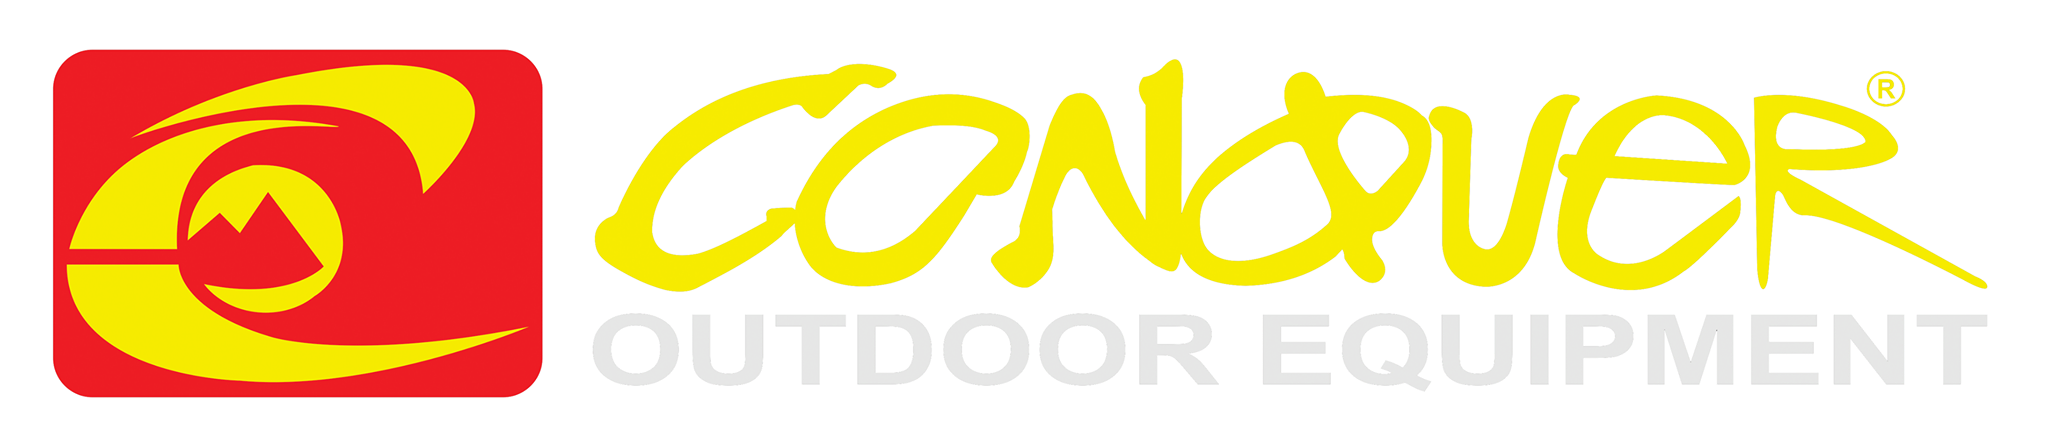 Conquer Outdoor Equipment coupon codes